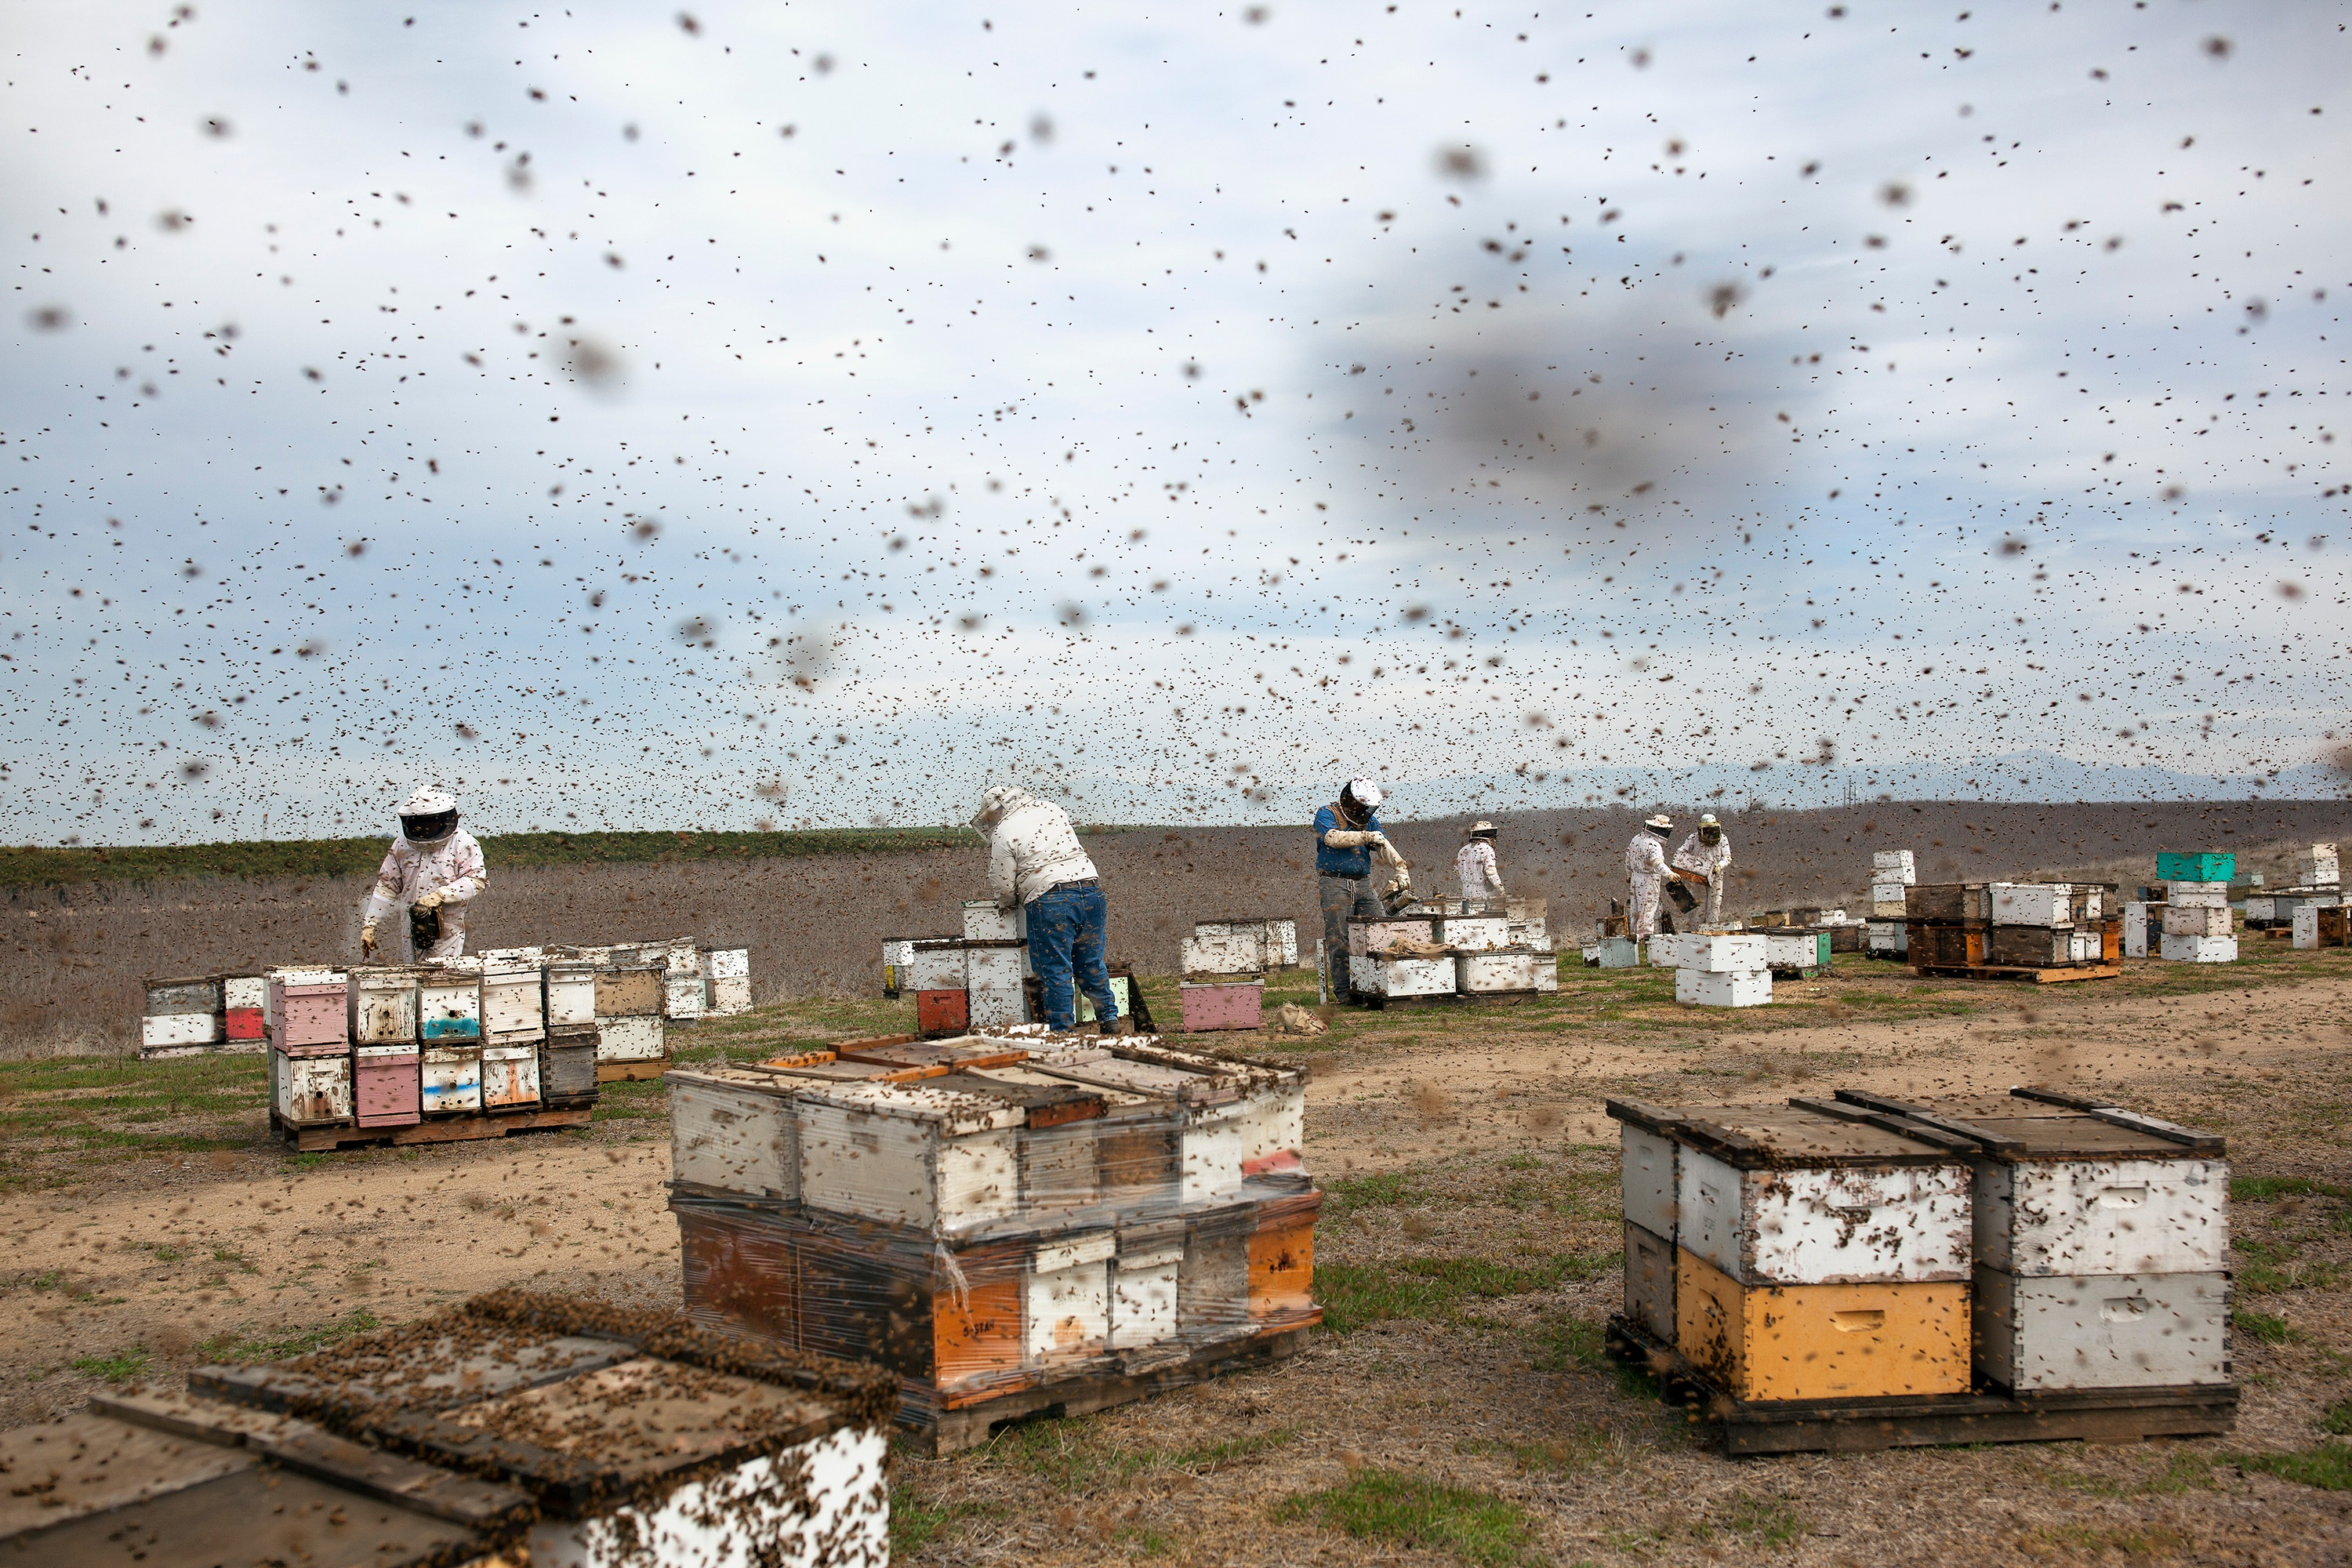 A photograph of beekeepers working in a field, surrounded by boxes and swarms of bees.